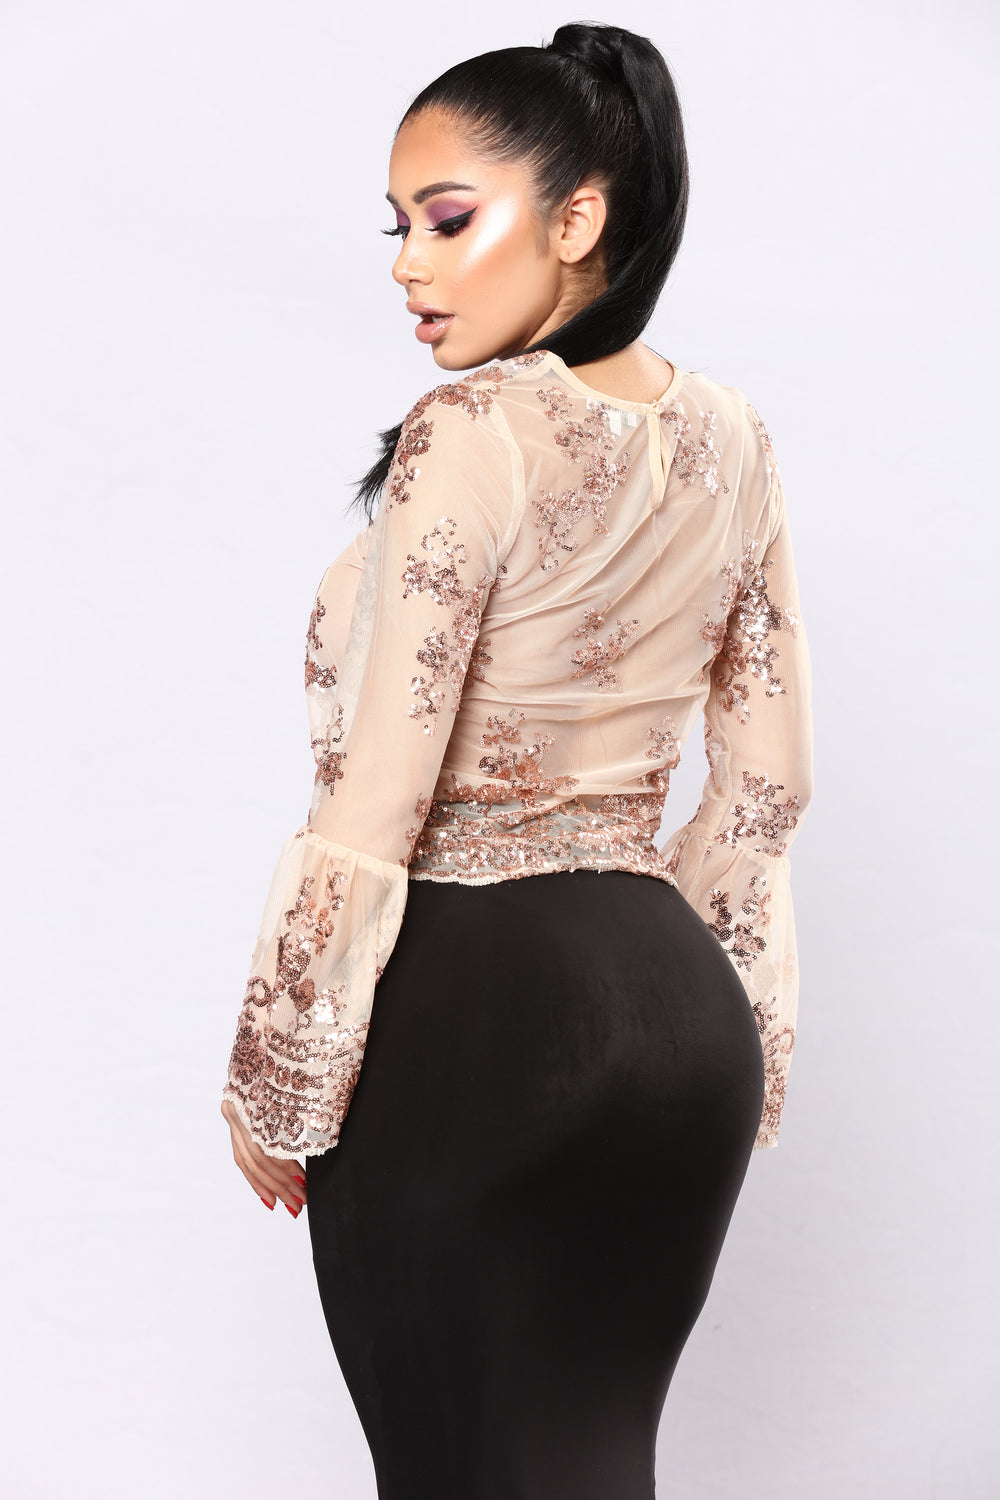 Suzanne Sequin Top - Rose Gold